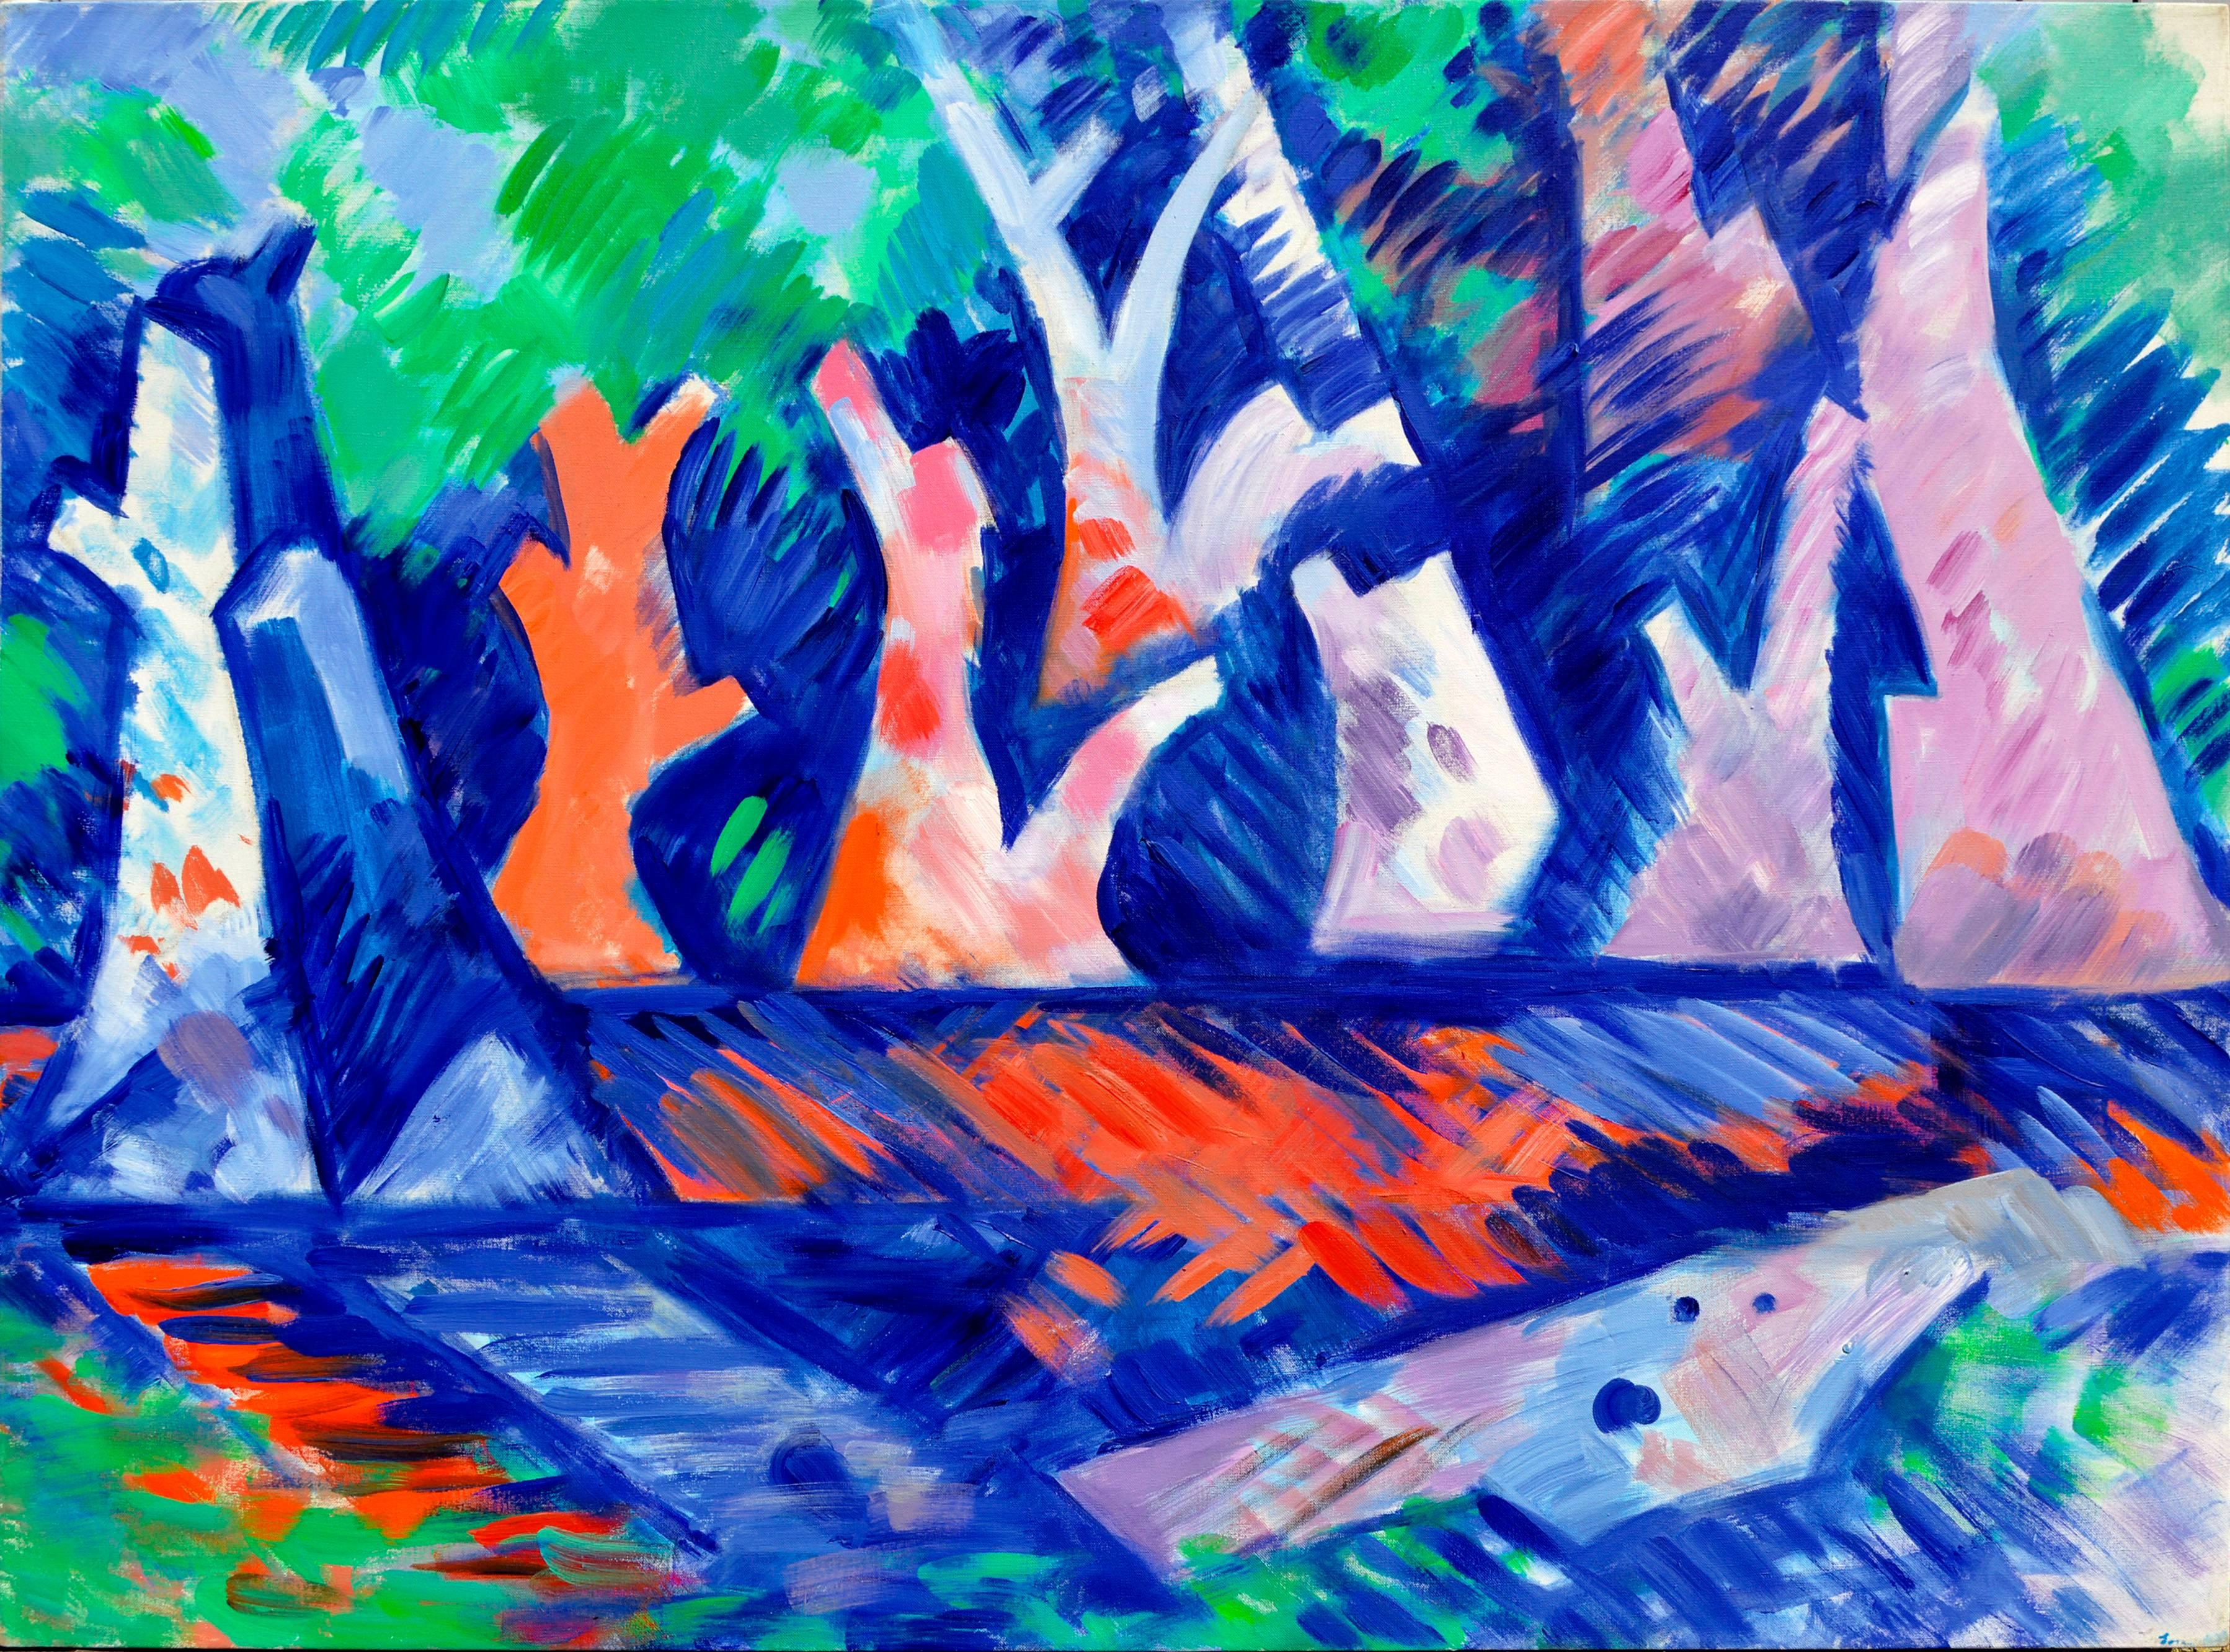 Trees Over Water - Abstract Geometric Landscape